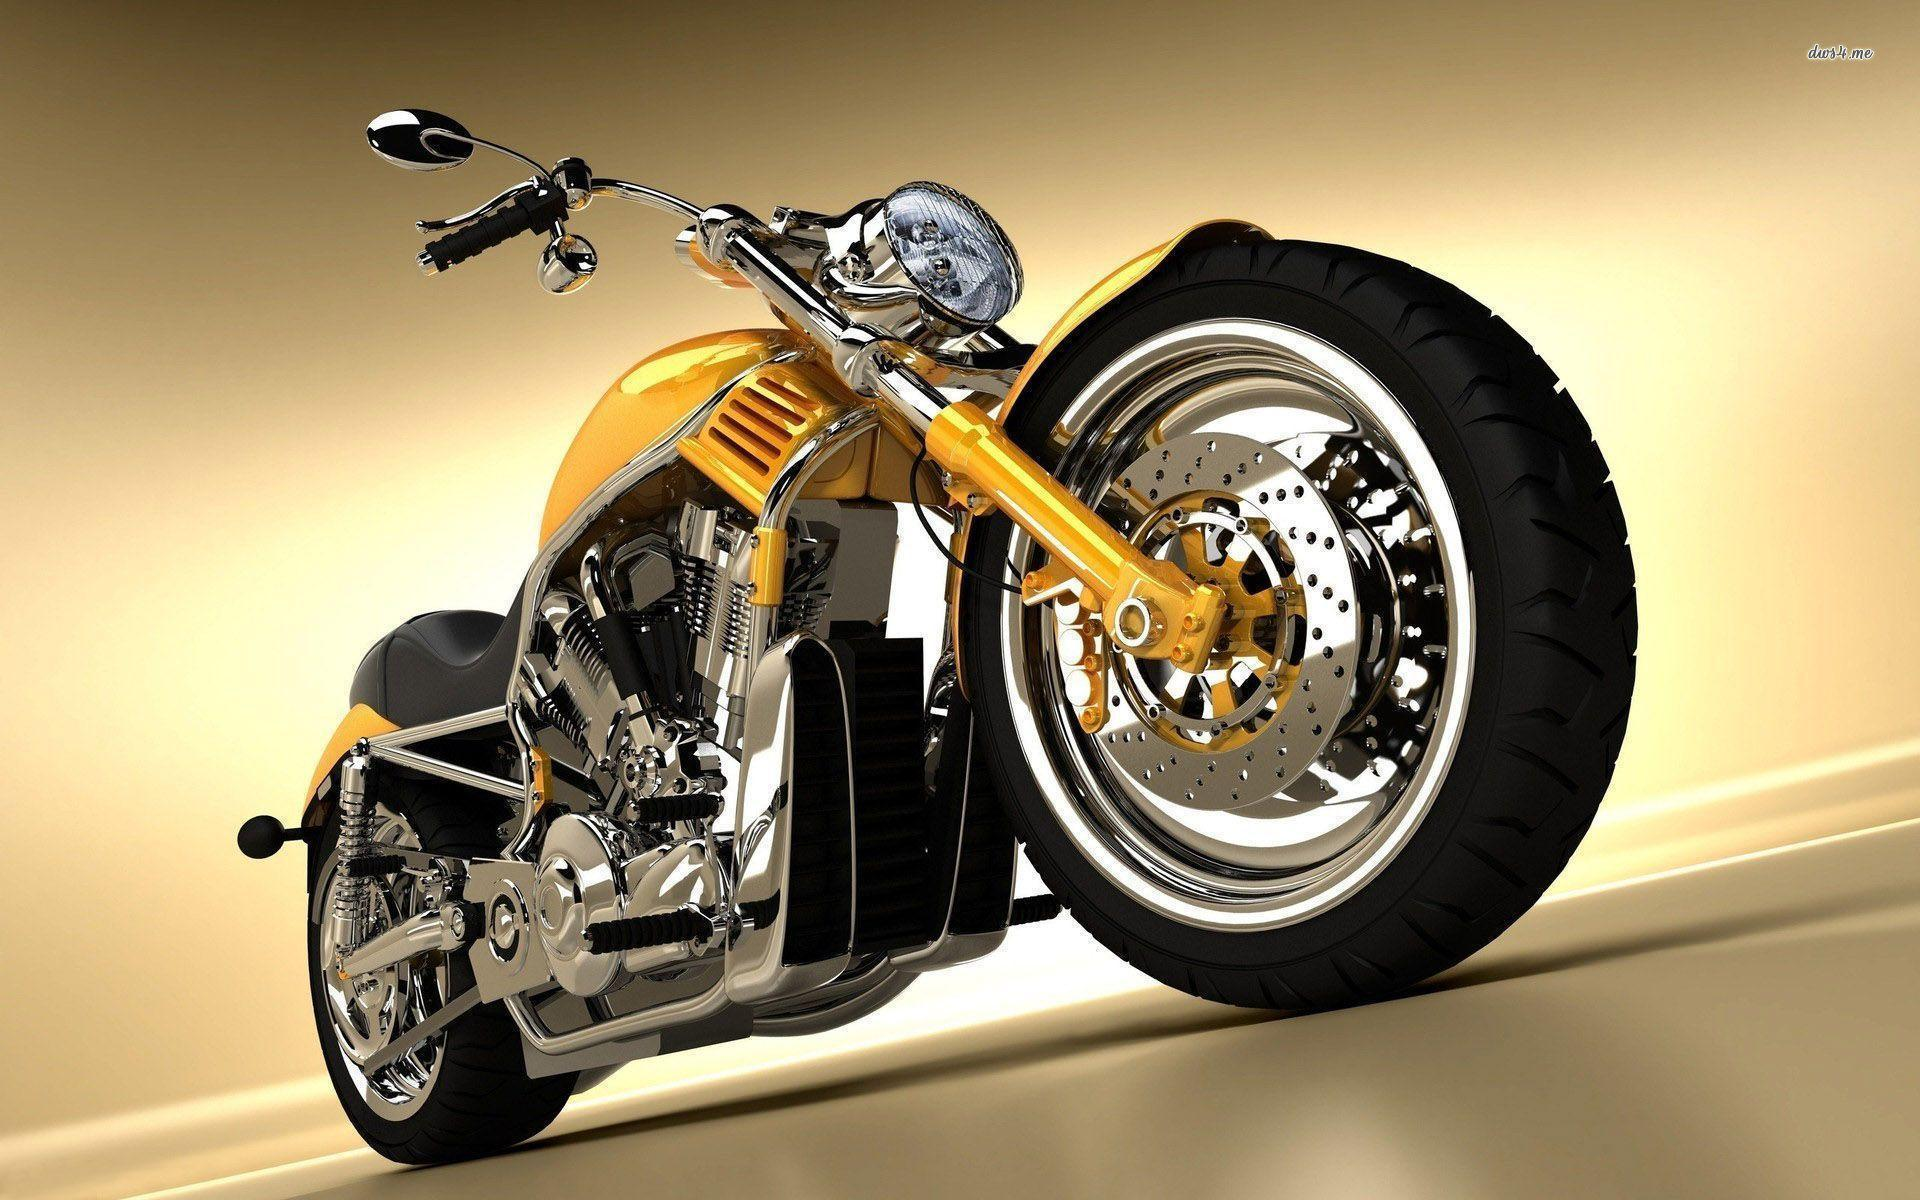 Harley Davidson 883 Wallpaper Hd #6872 Wallpaper | awshdwallpapers.